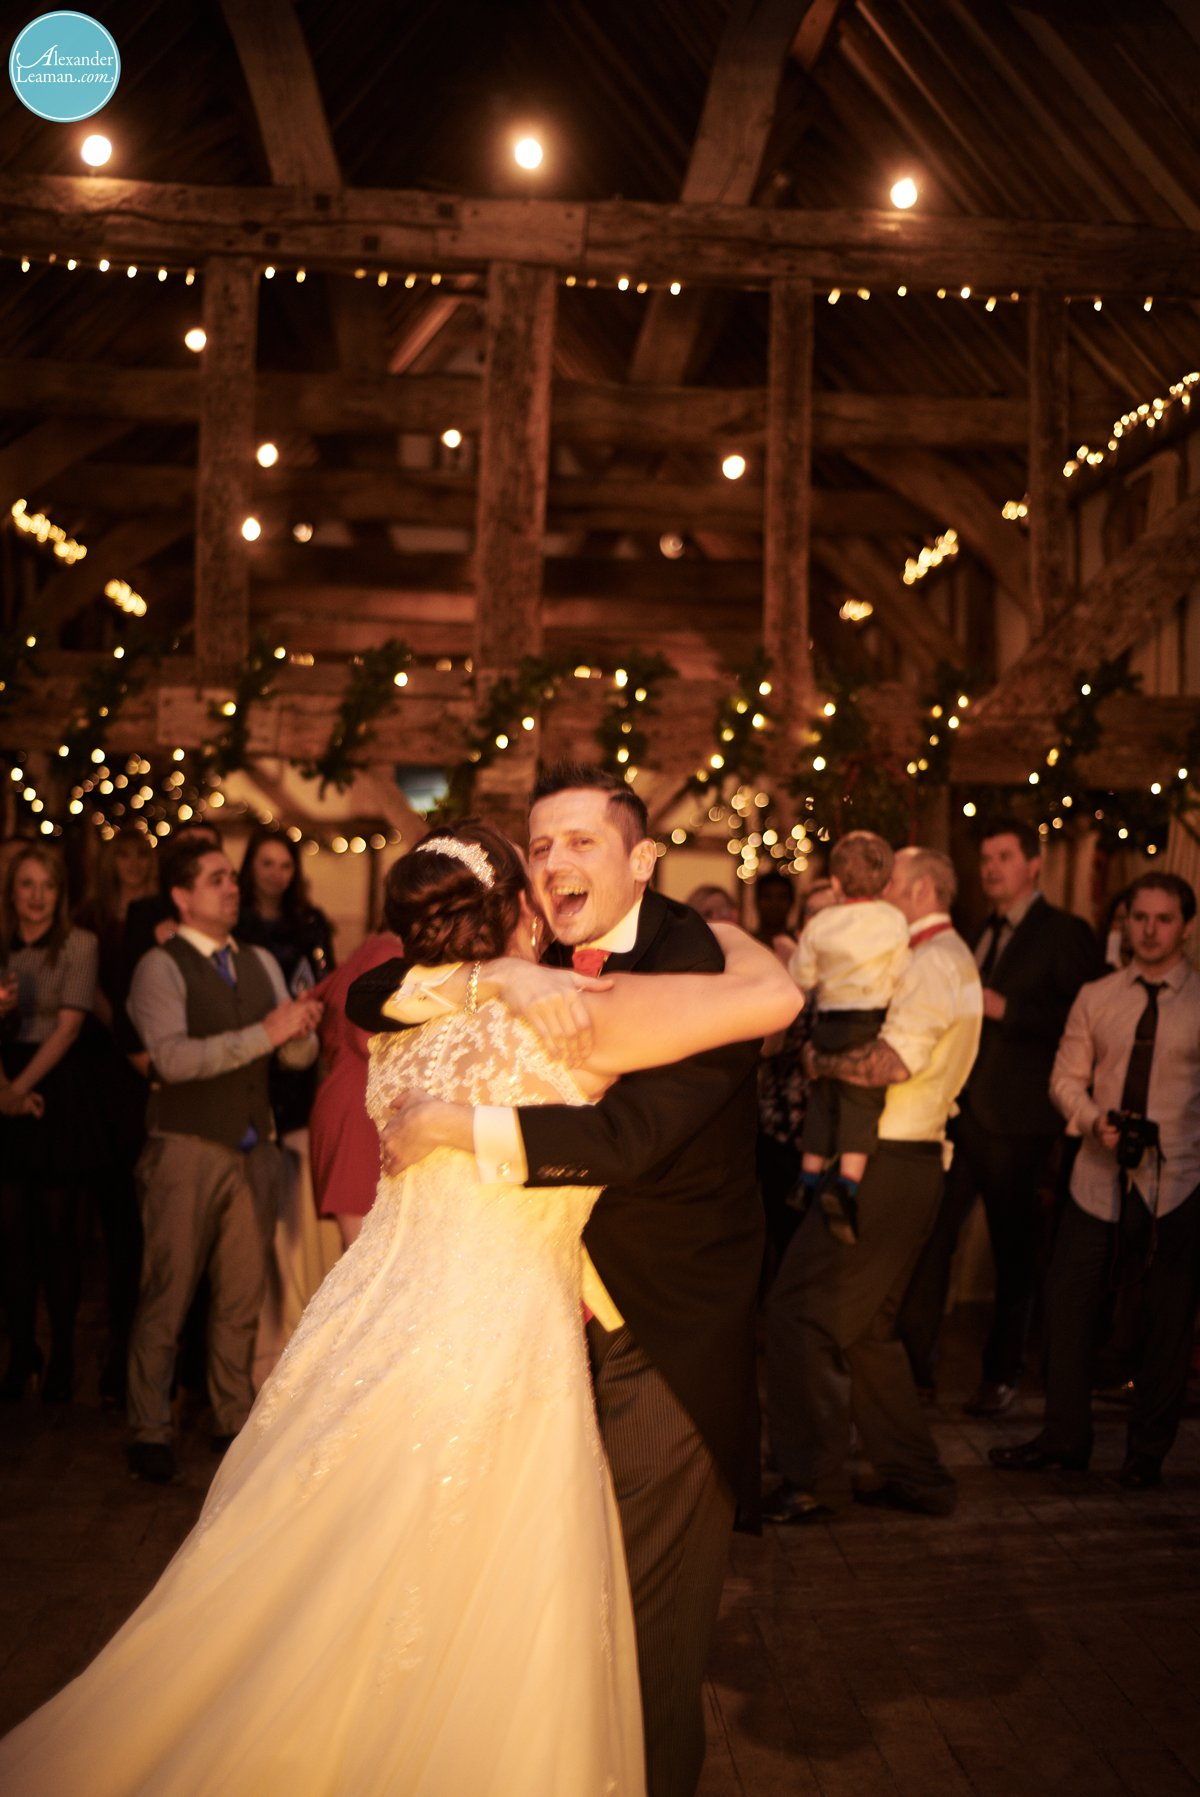 The first dance on fuji X100s